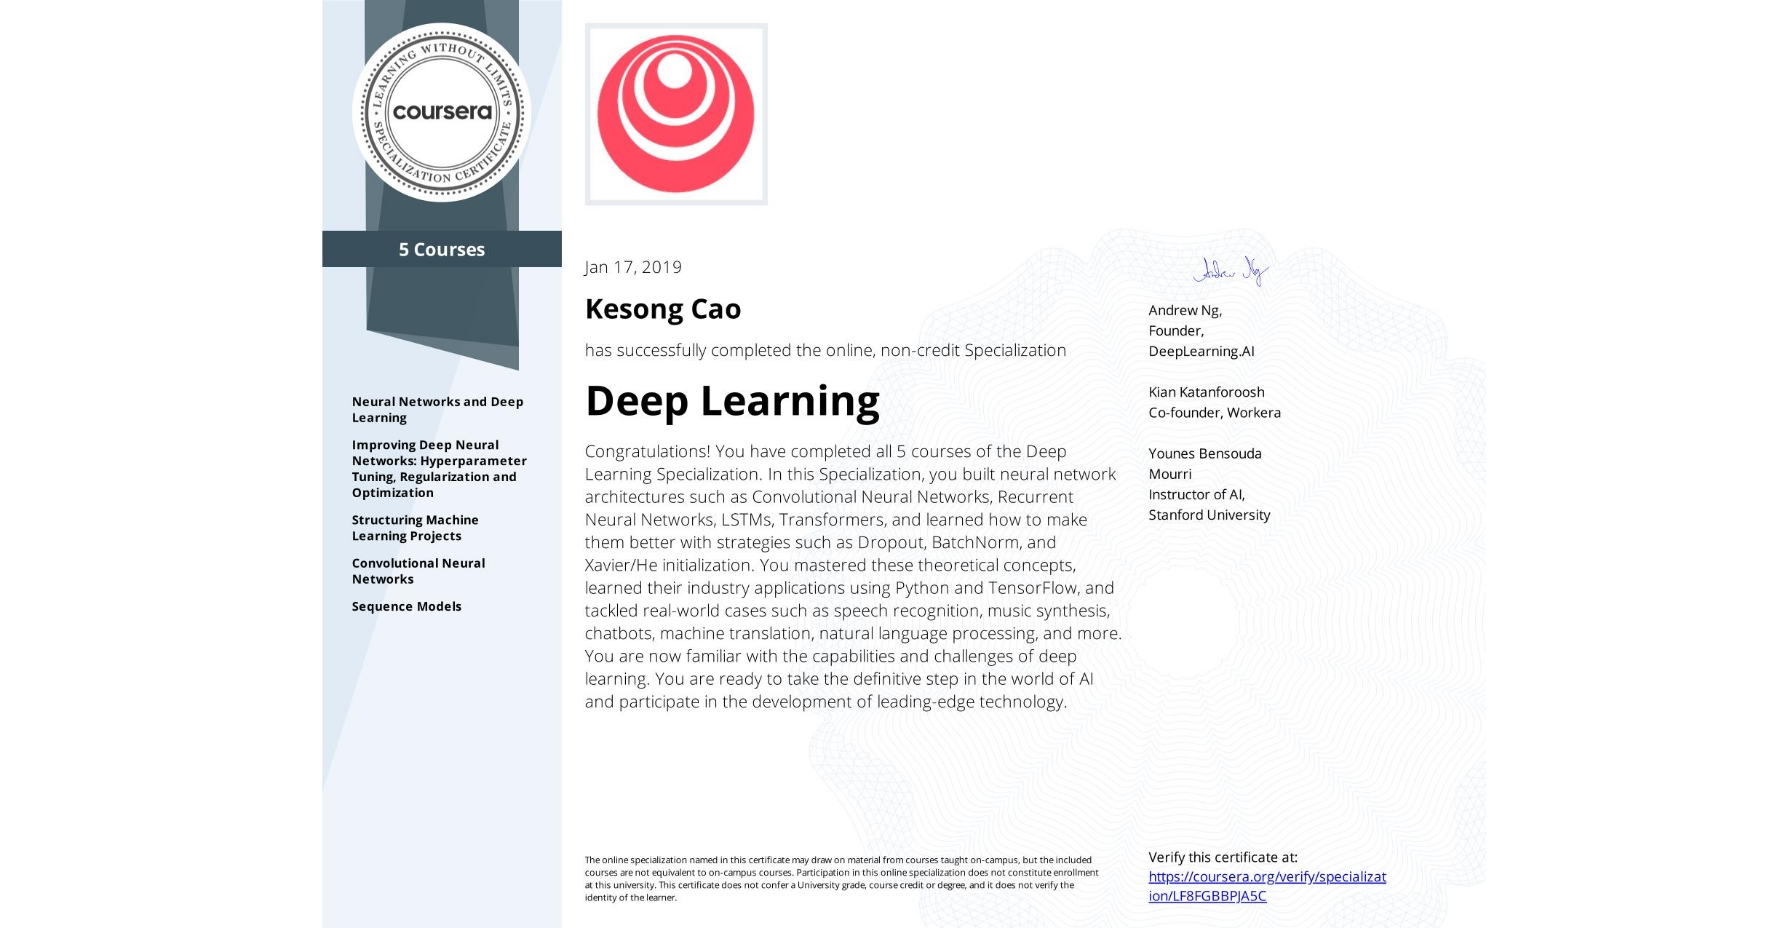 View certificate for Kesong Cao, Deep Learning, offered through Coursera. The Deep Learning Specialization is designed to prepare learners to participate in the development of cutting-edge AI technology, and to understand the capability, the challenges, and the consequences of the rise of deep learning. Through five interconnected courses, learners develop a profound knowledge of the hottest AI algorithms, mastering deep learning from its foundations (neural networks) to its industry applications (Computer Vision, Natural Language Processing, Speech Recognition, etc.).